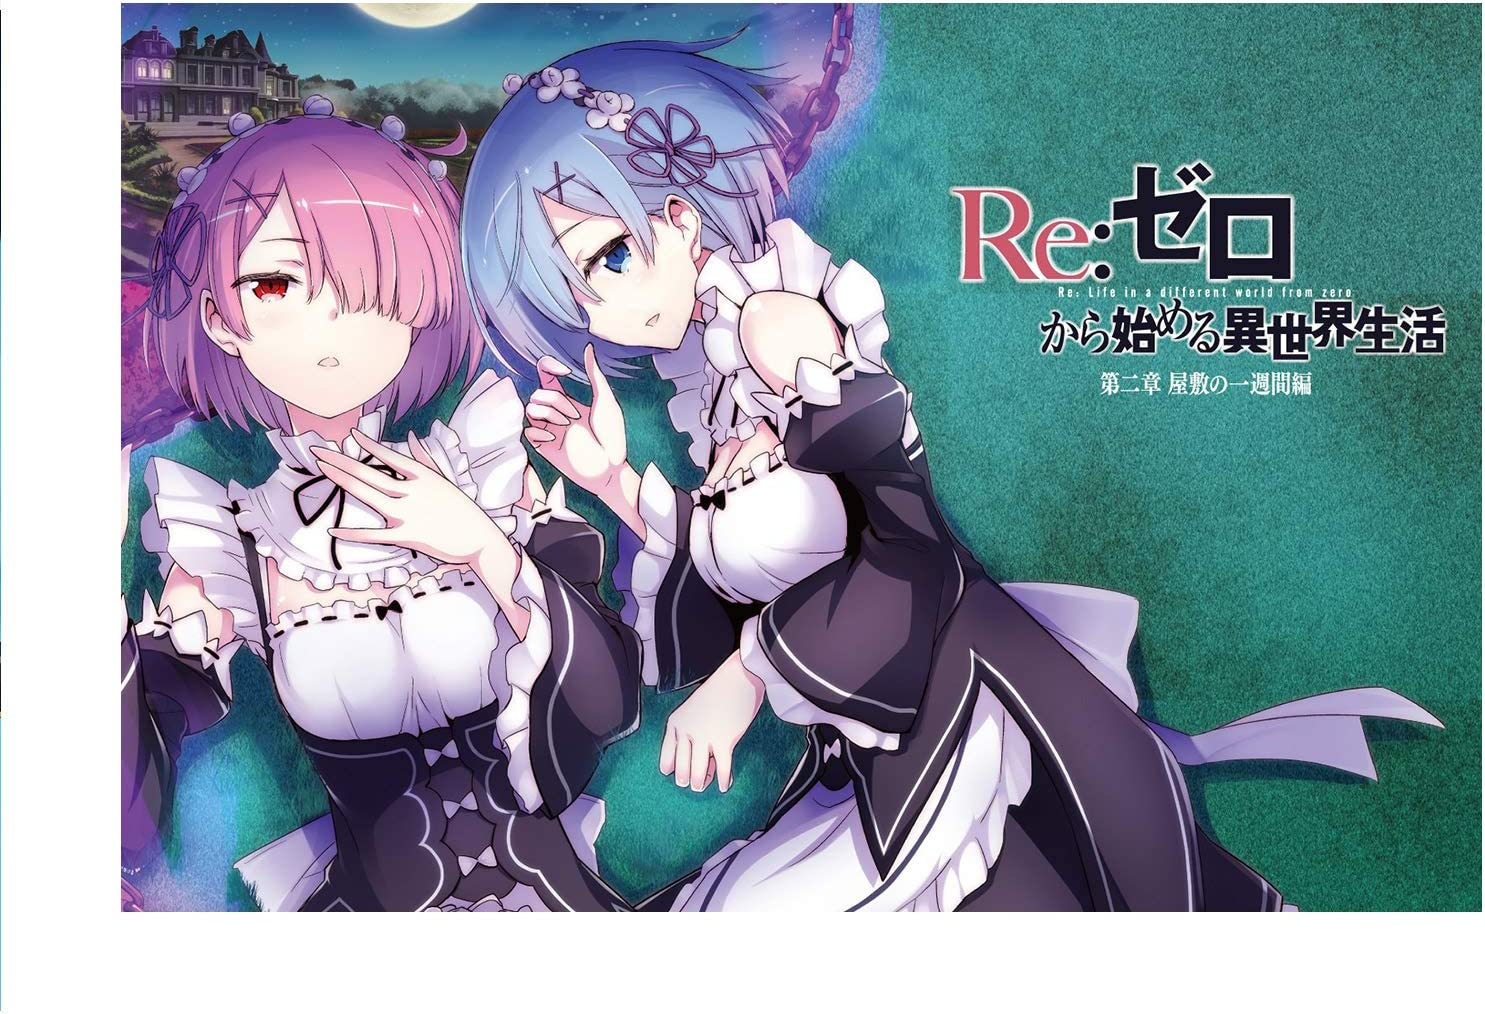 Dgdgd Re: Life In A Different World Ram DIY Rem and Zero Long-awaited From 5D Animer price revision